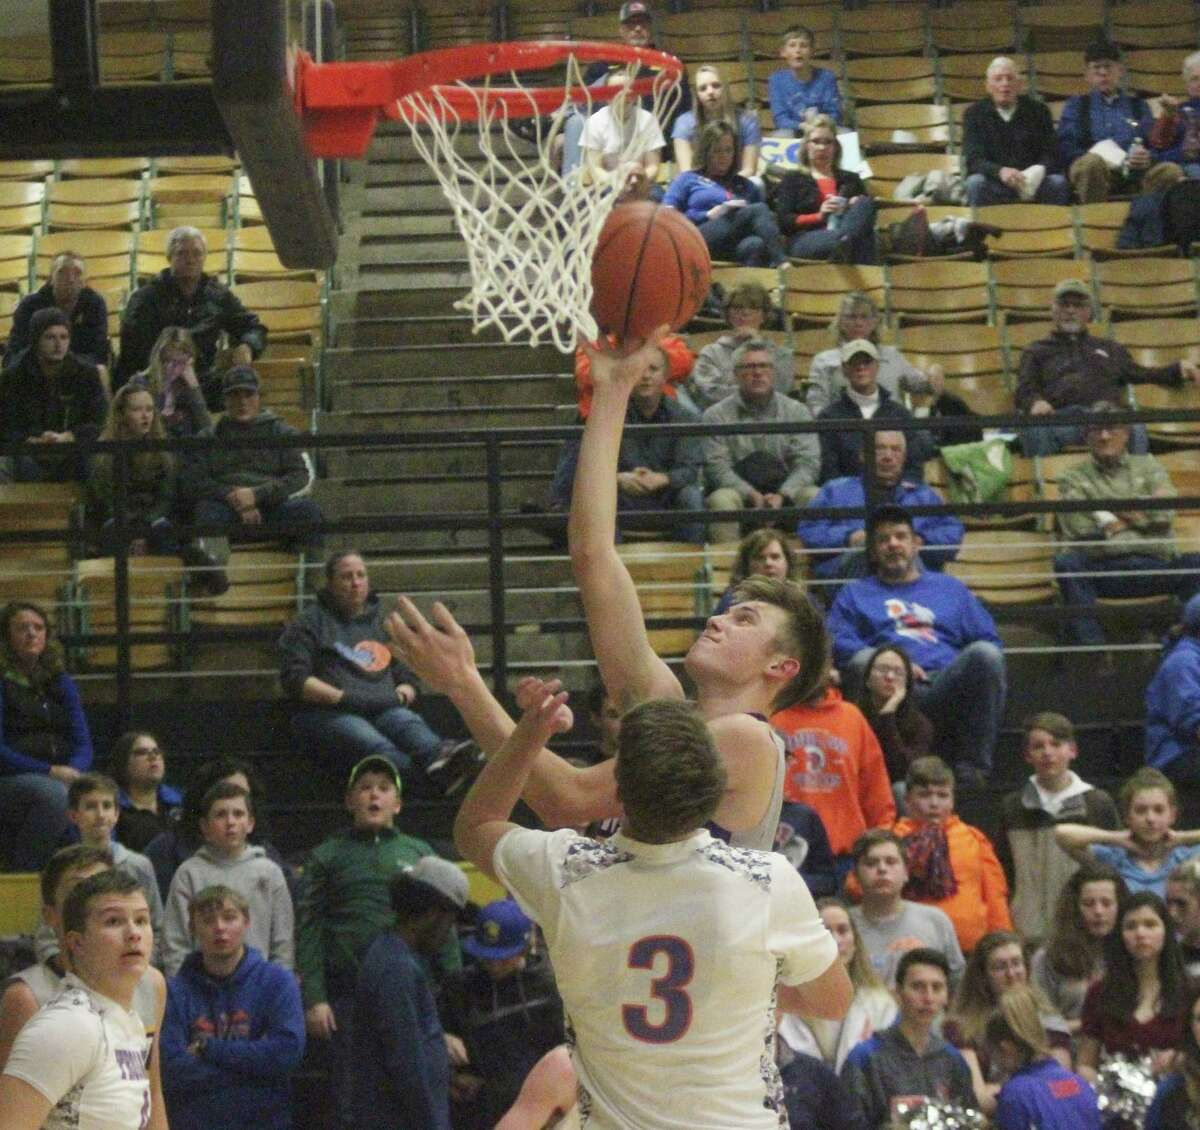 Will Newbold scores on a transition layup in the first half of Frankfort's rout of Central Lake. (Photo/Robert Myers)